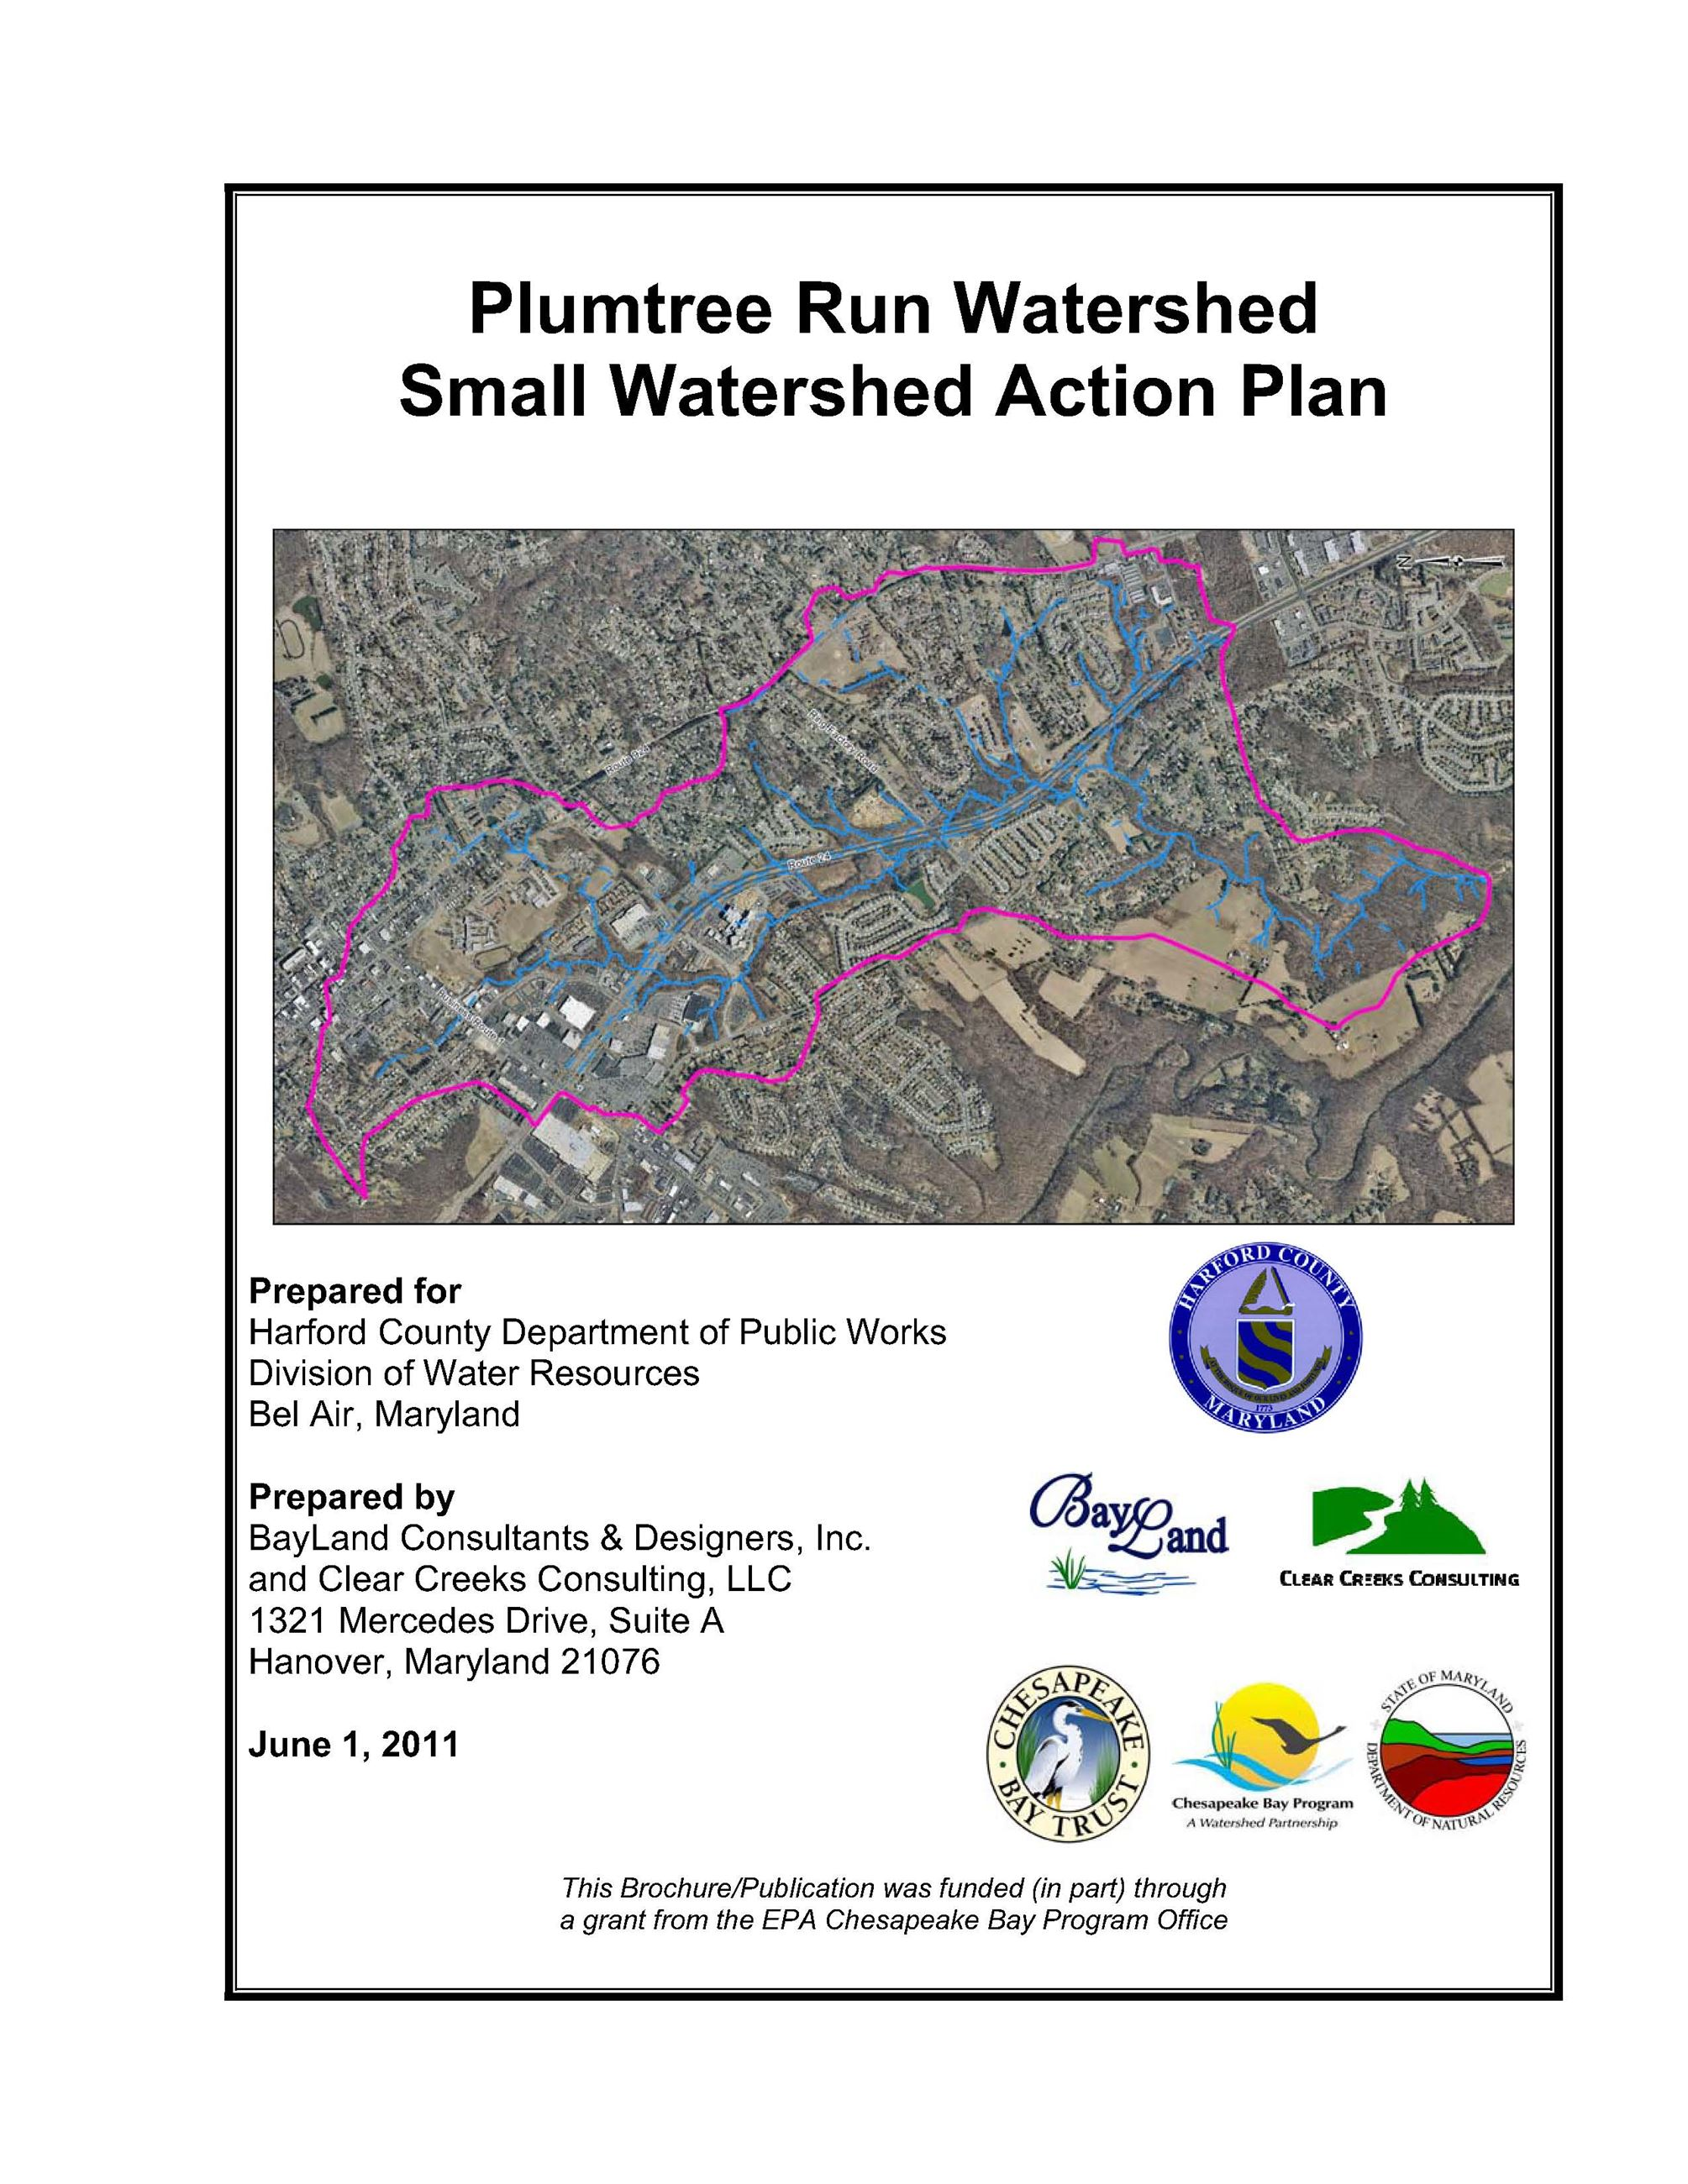 Plumtree Run SWAP coverpage